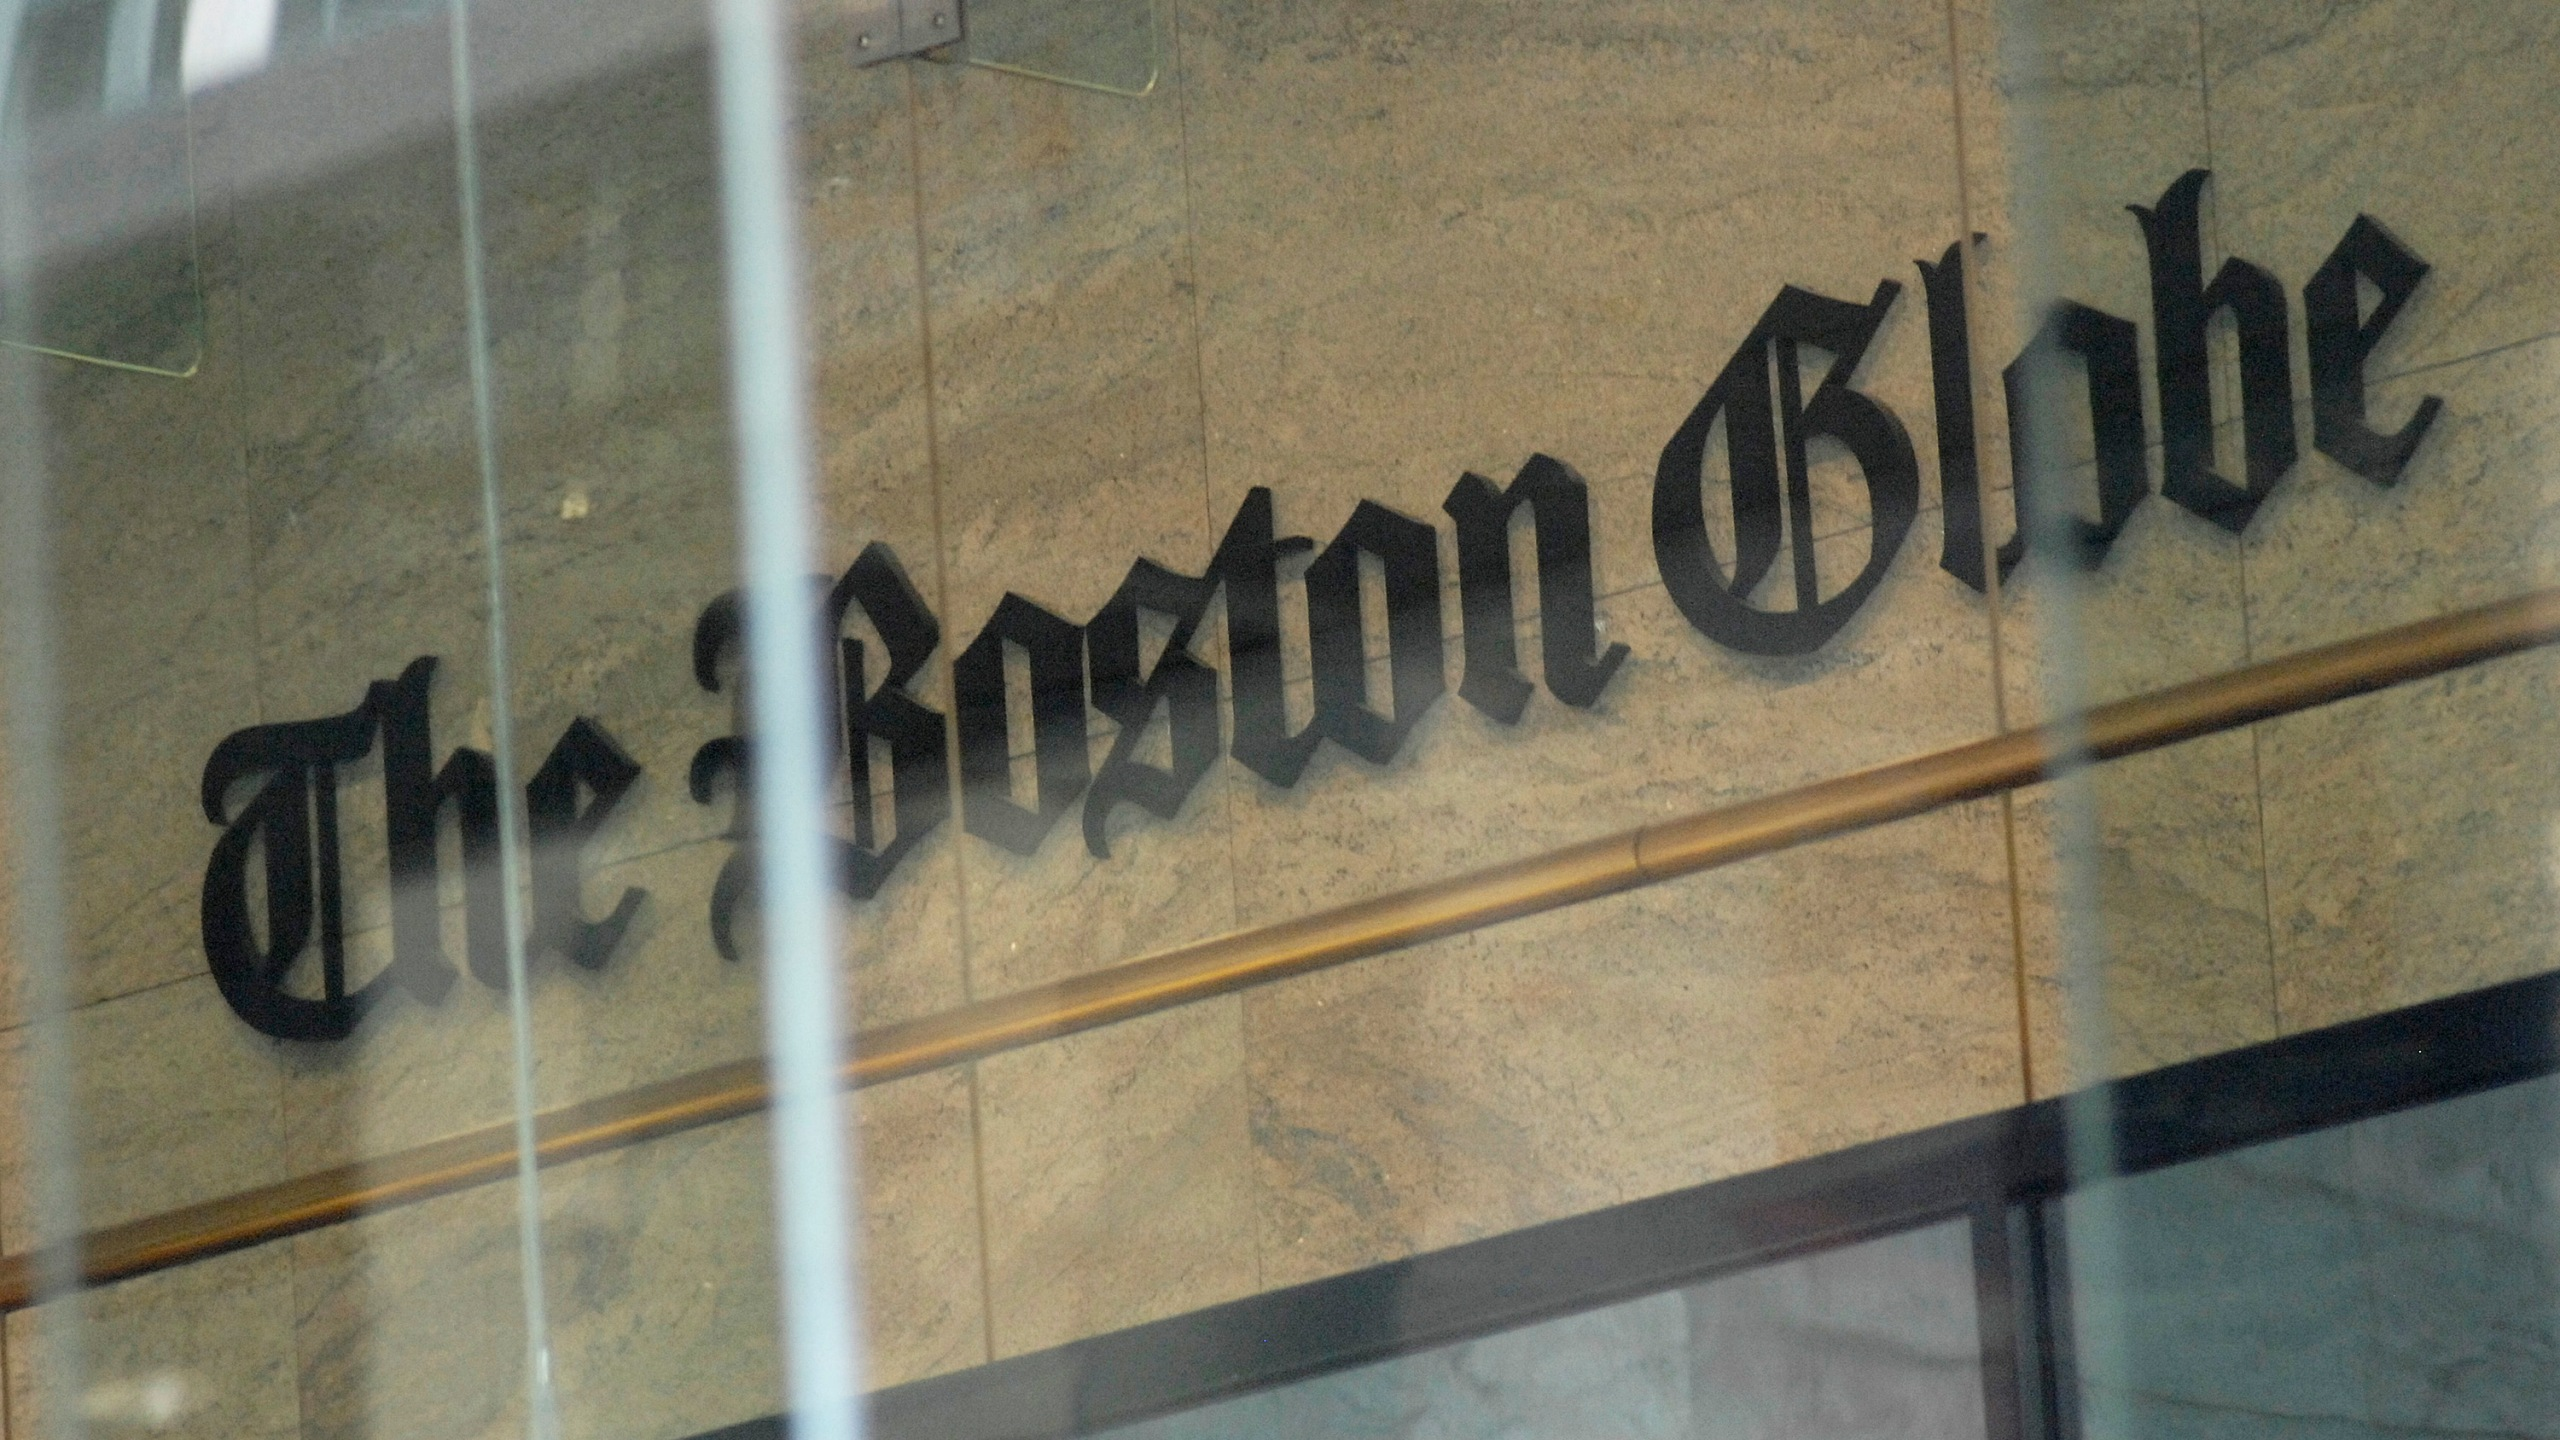 """The Boston Globe logo as seen through the windows across from the new location of the Boston Globe at 53 State Street, Boston, at one Exchange Place in the Exchange Building on August 15, 2018. - Branded """"enemy of the people"""" by us President Donald Trump, the US news media is responding with a campaign aimed at countering the president's narrative and highlighting the importance of a free press. More than 200 news organizations are to participate in a coordinated campaign on August 16, 2018, with editorials about the importance of an independent media and a social media hashtag #EnemyOfNone. The move comes in response to a call by the Boston Globe amid a growing sense of unease that Trump's rhetoric is harmful to a free press and may even incite violence against journalists. (Photo by Joseph PREZIOSO / AFP) (Photo credit should read JOSEPH PREZIOSO/AFP/Getty Images)"""